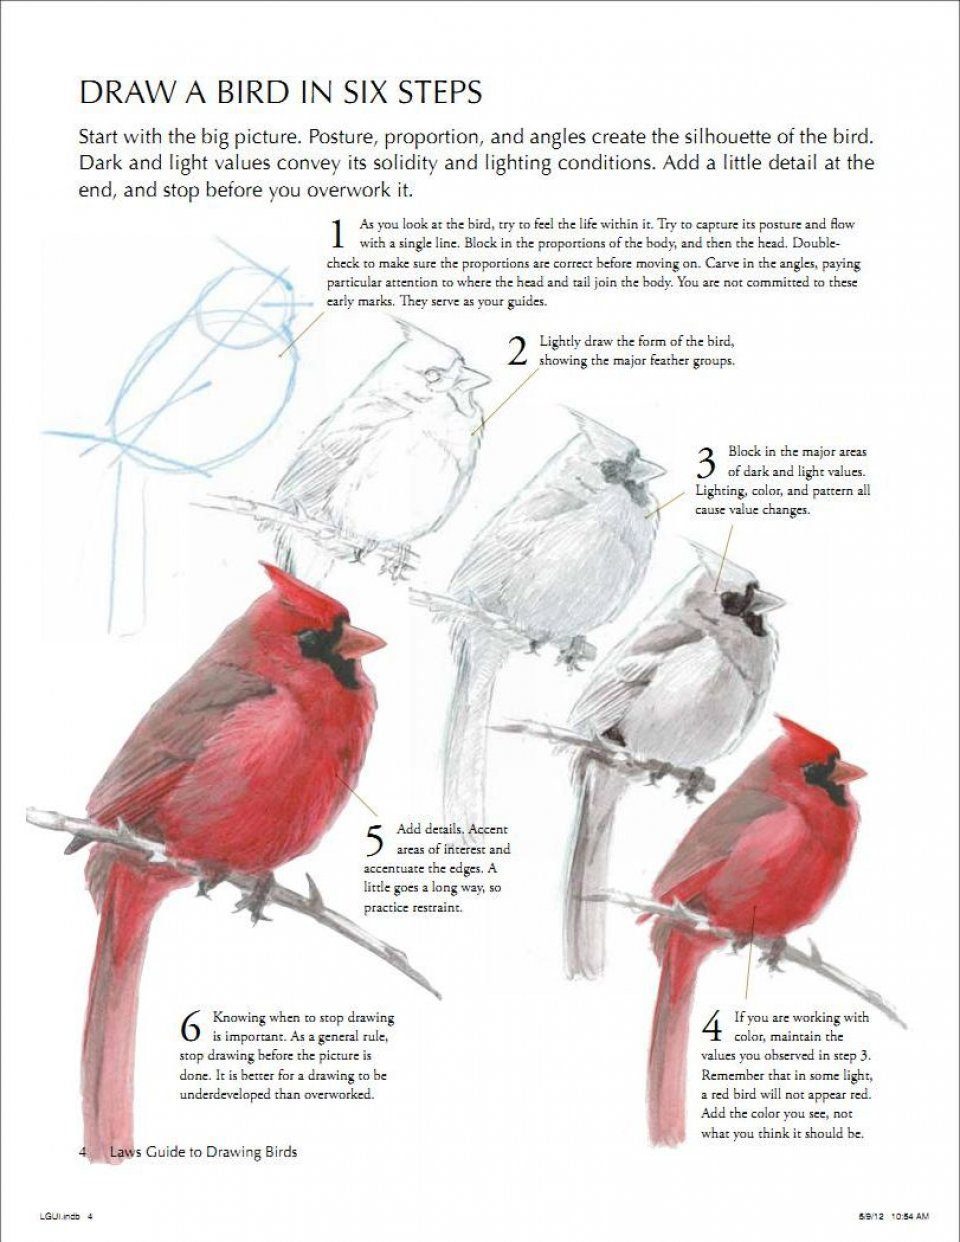 the laws guide to drawing birds john muir laws david allen